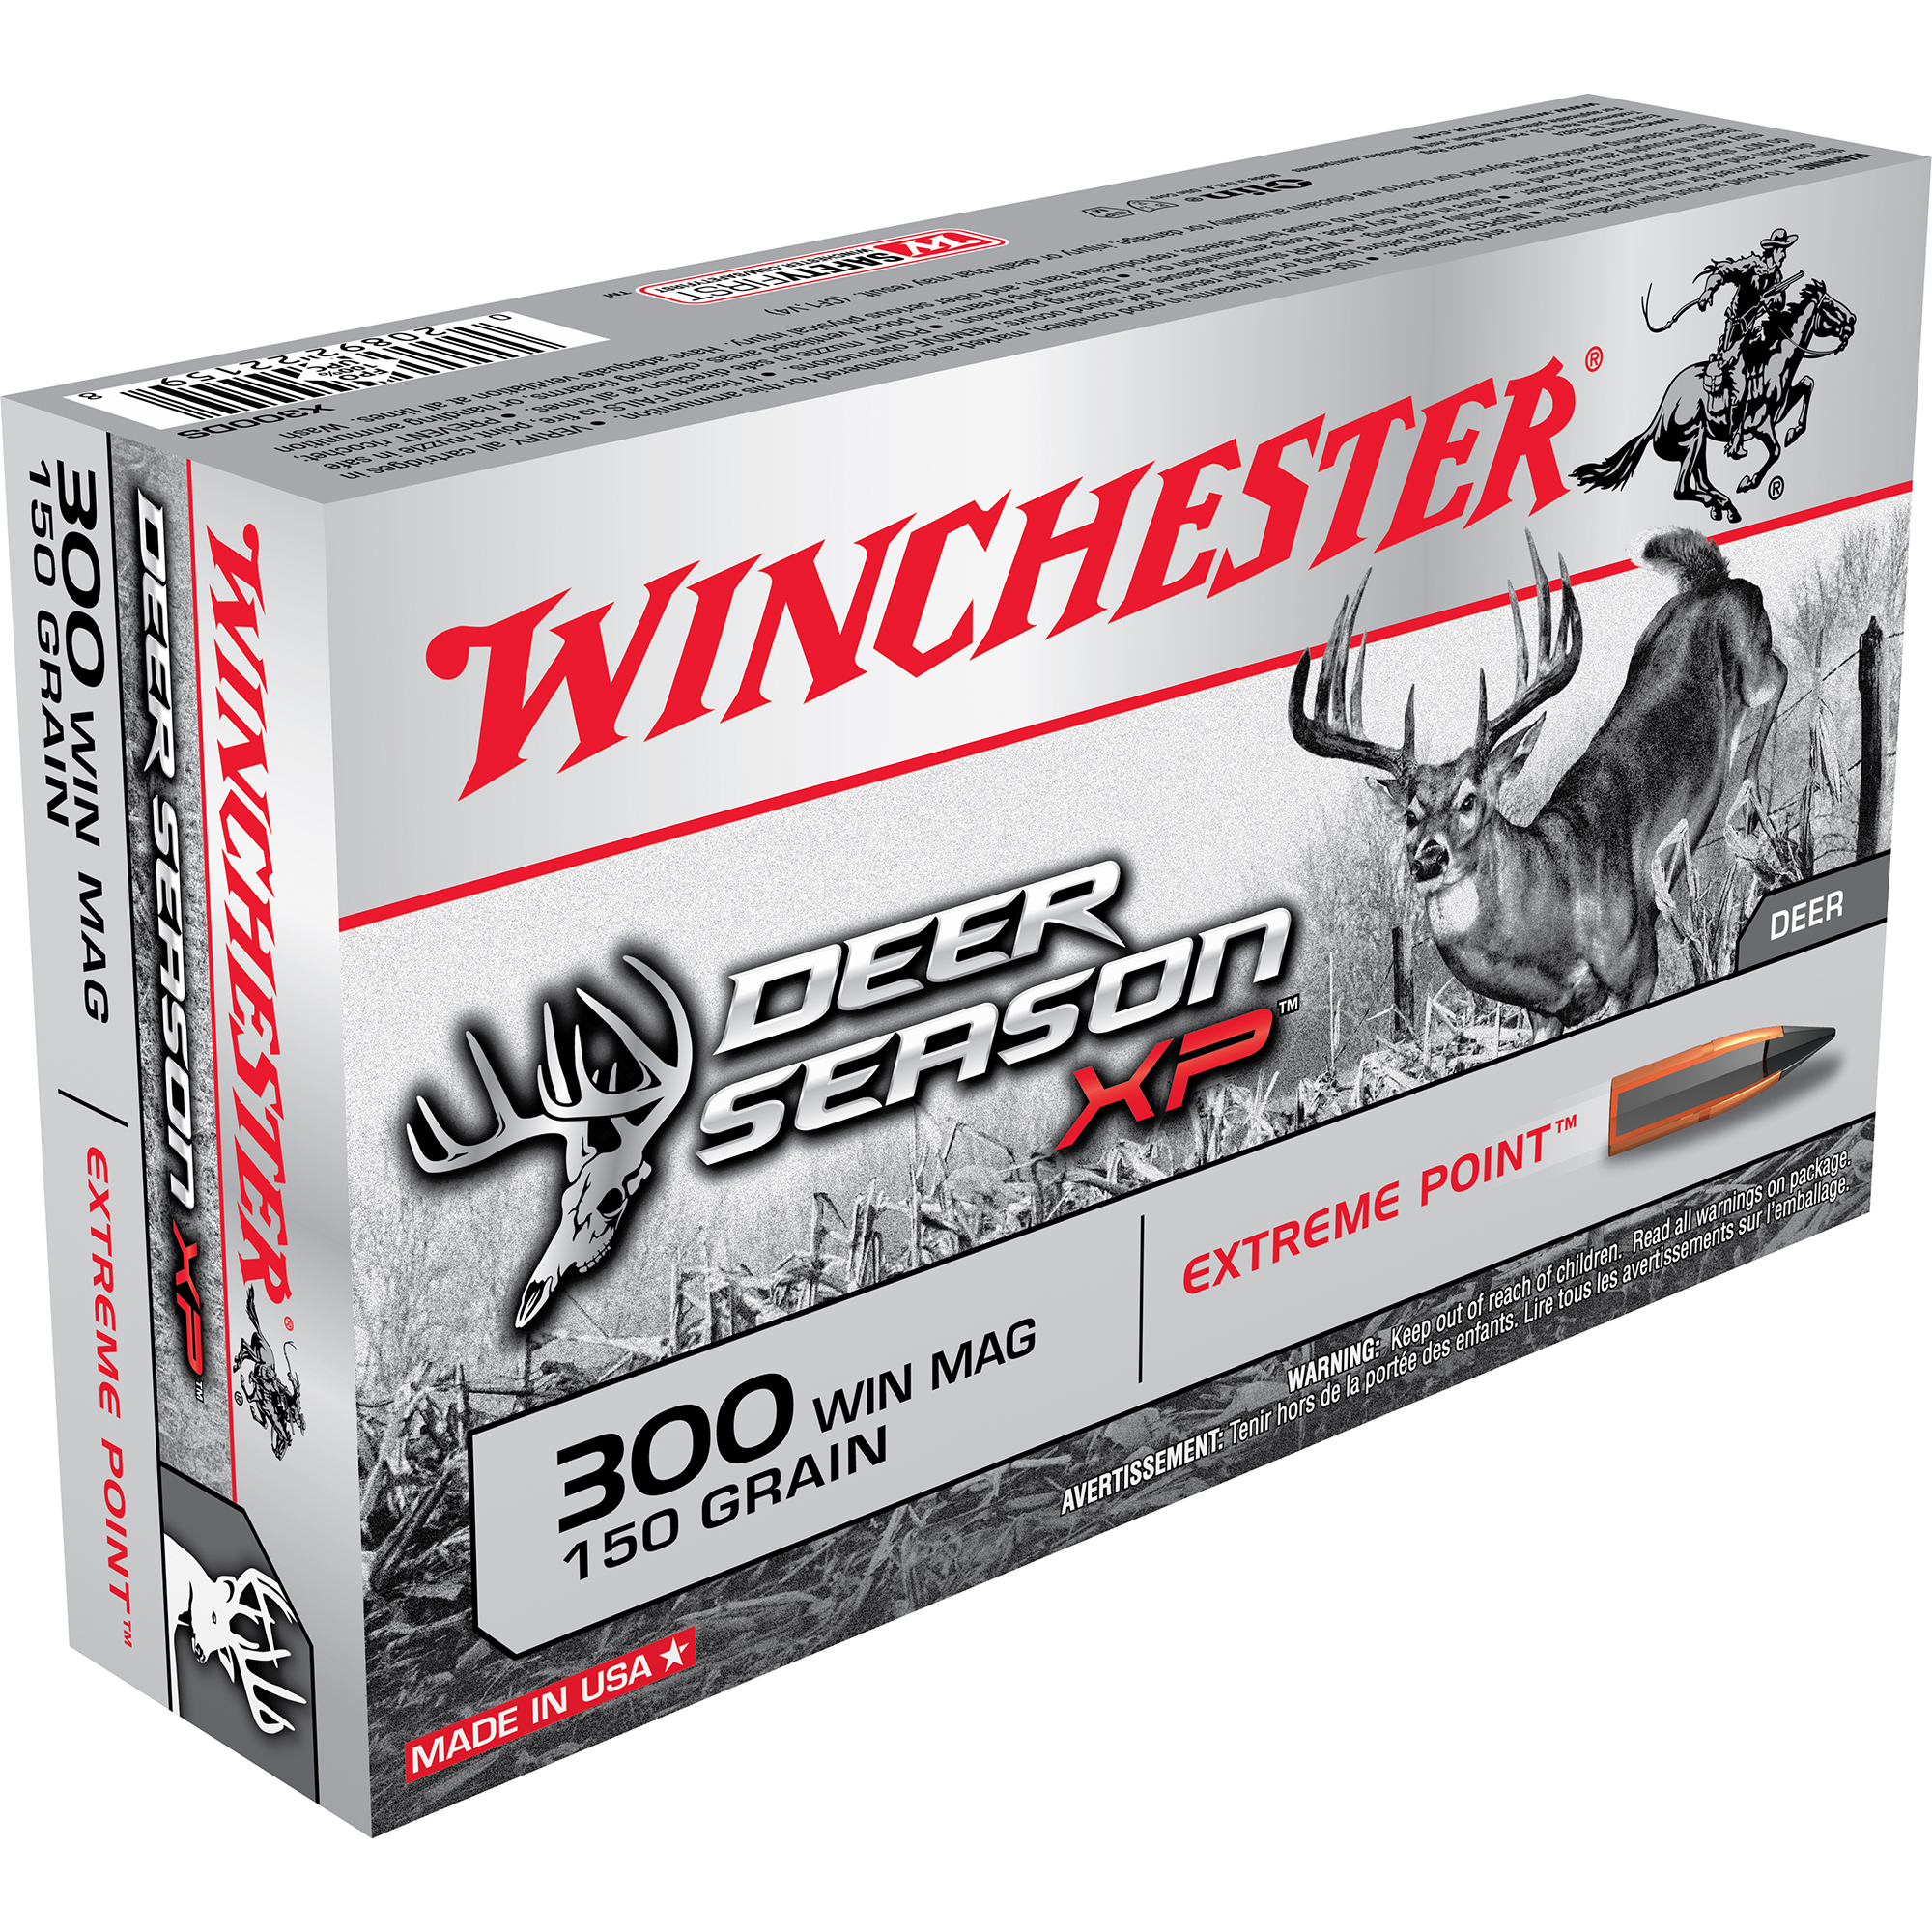 Winchester Deer Season XP Rifle Ammo, .300 Win Mag, 150-gr, Extreme Point